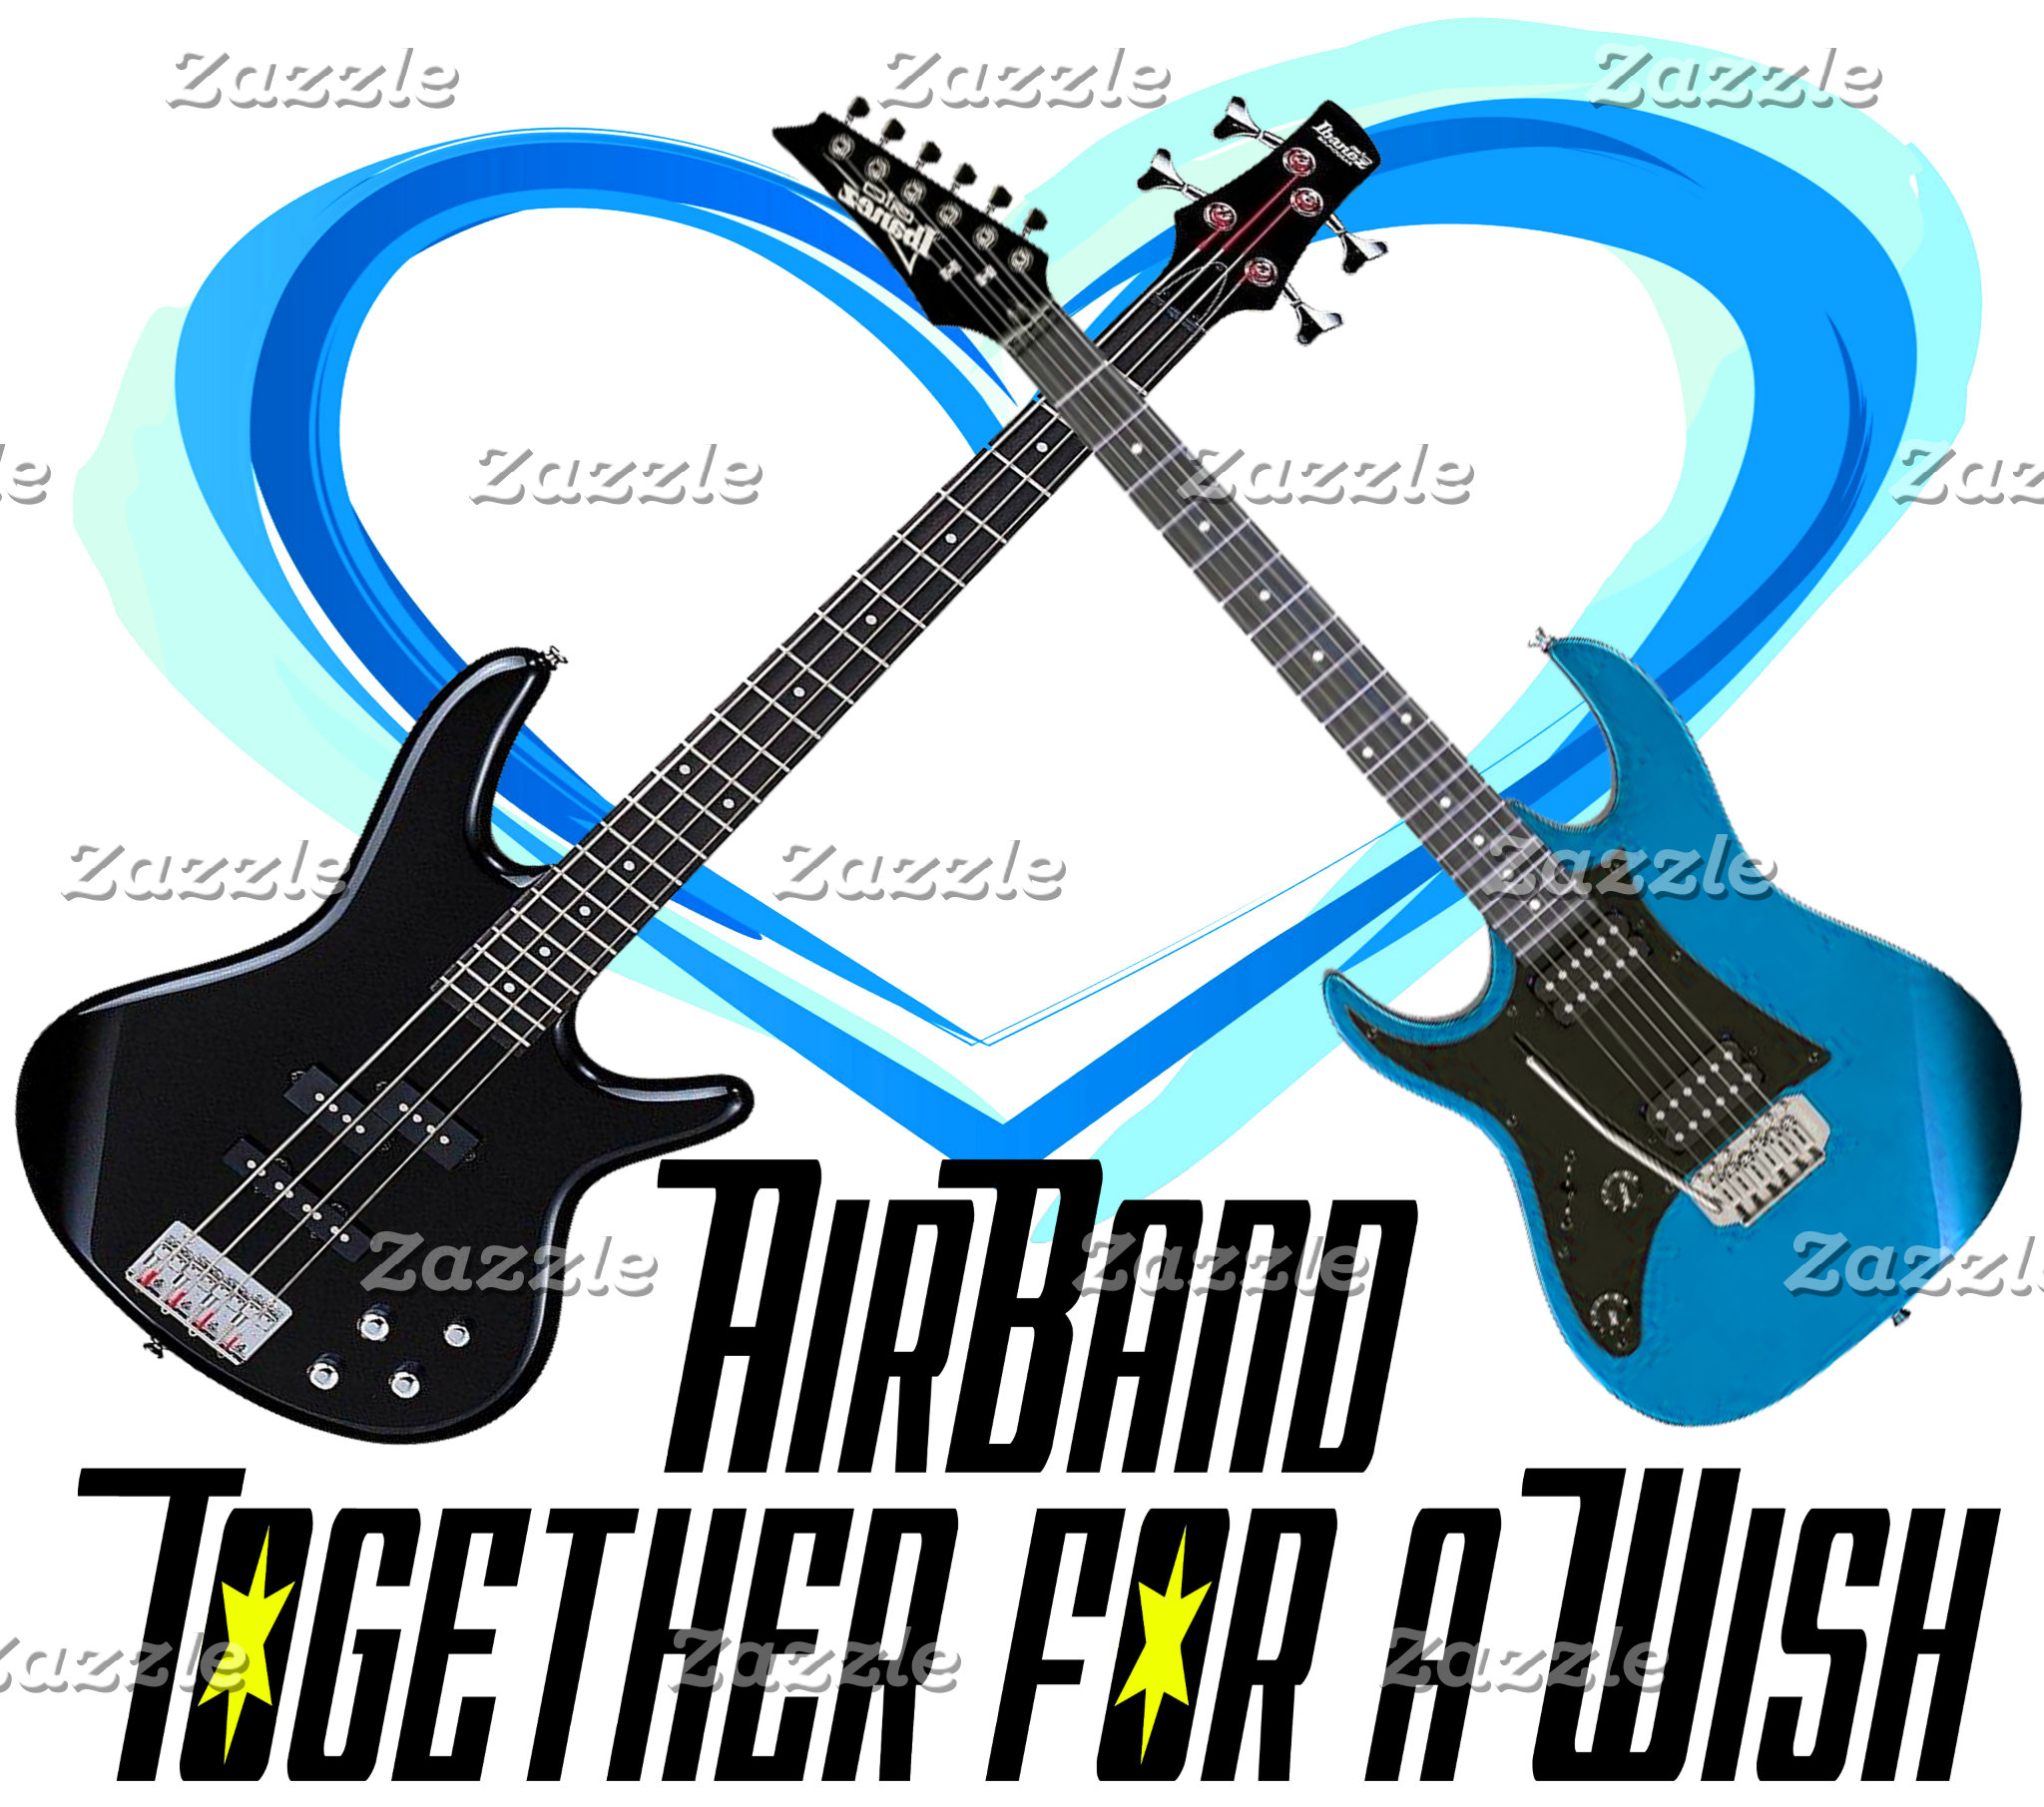 AirBand_Together